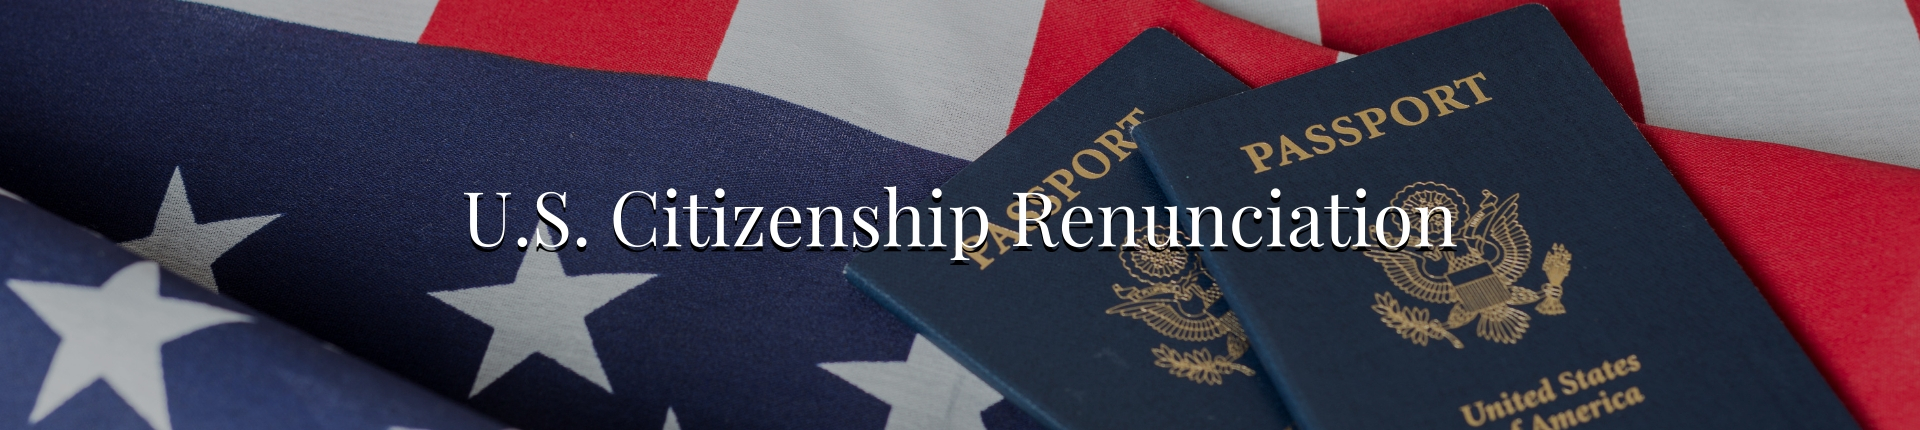 US Citizenship Renunciation Services